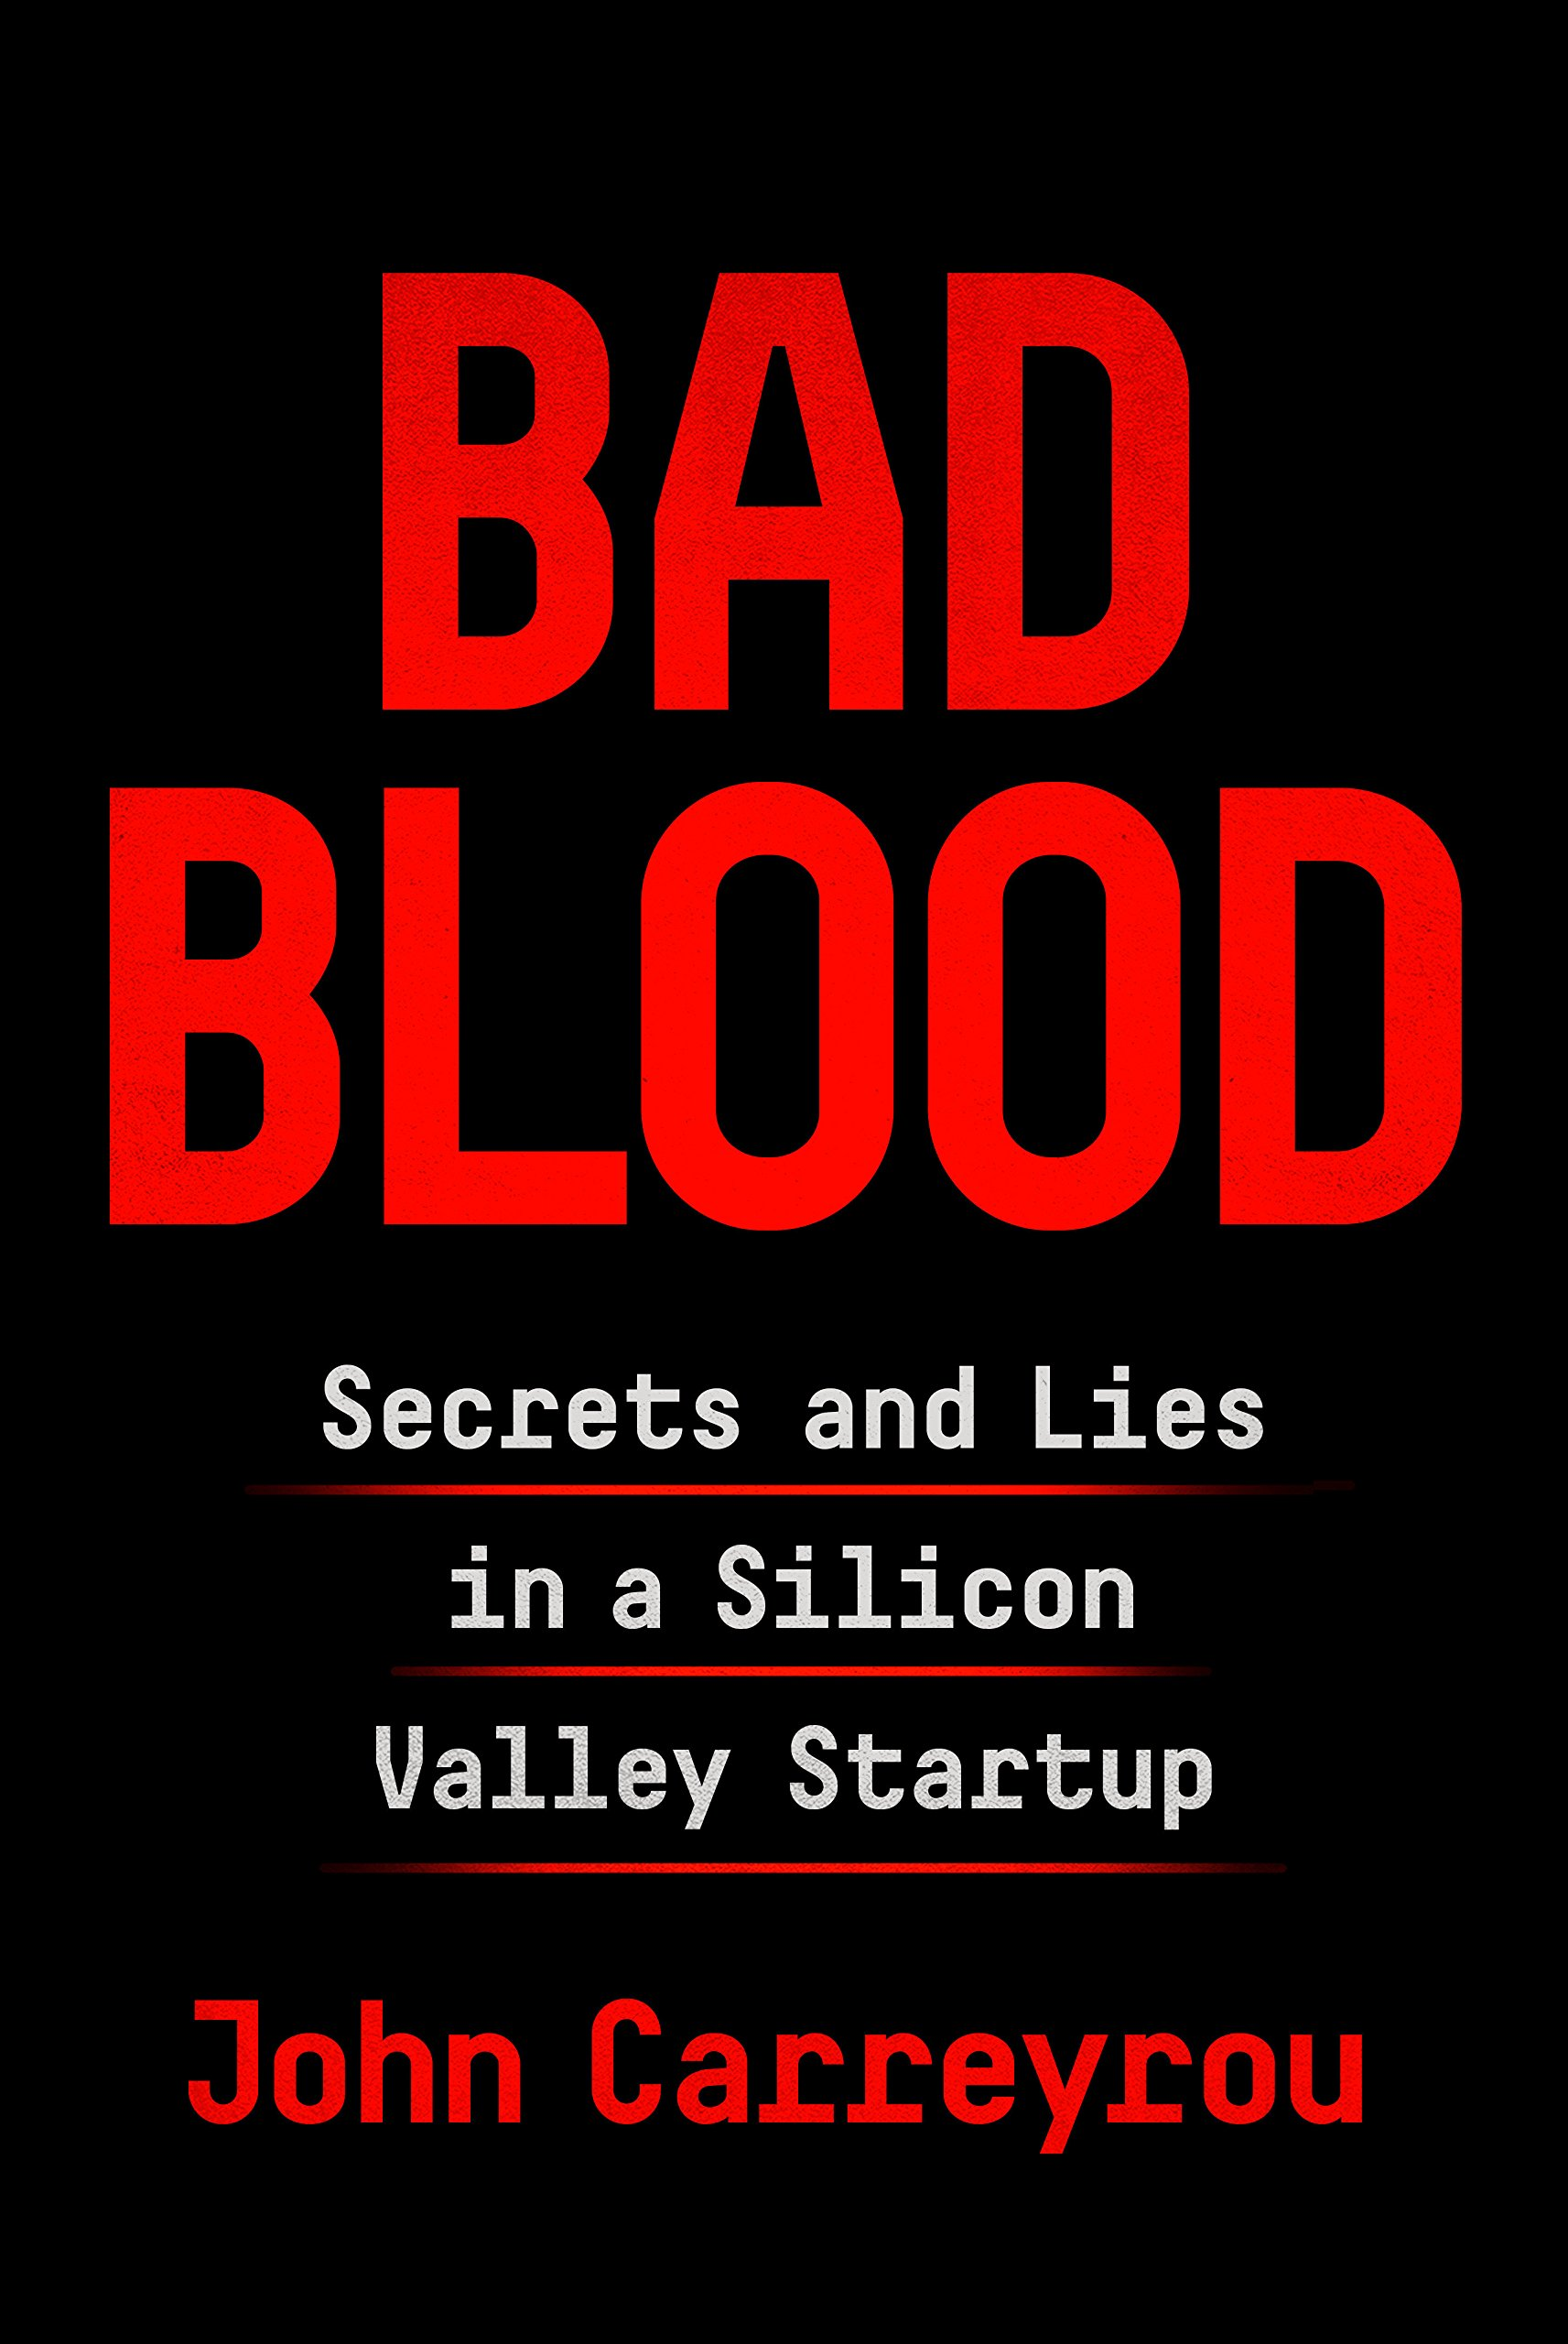 Image result for Bad Blood: Secrets and Lies in a Silicon Valley Startup by John Carreyrou